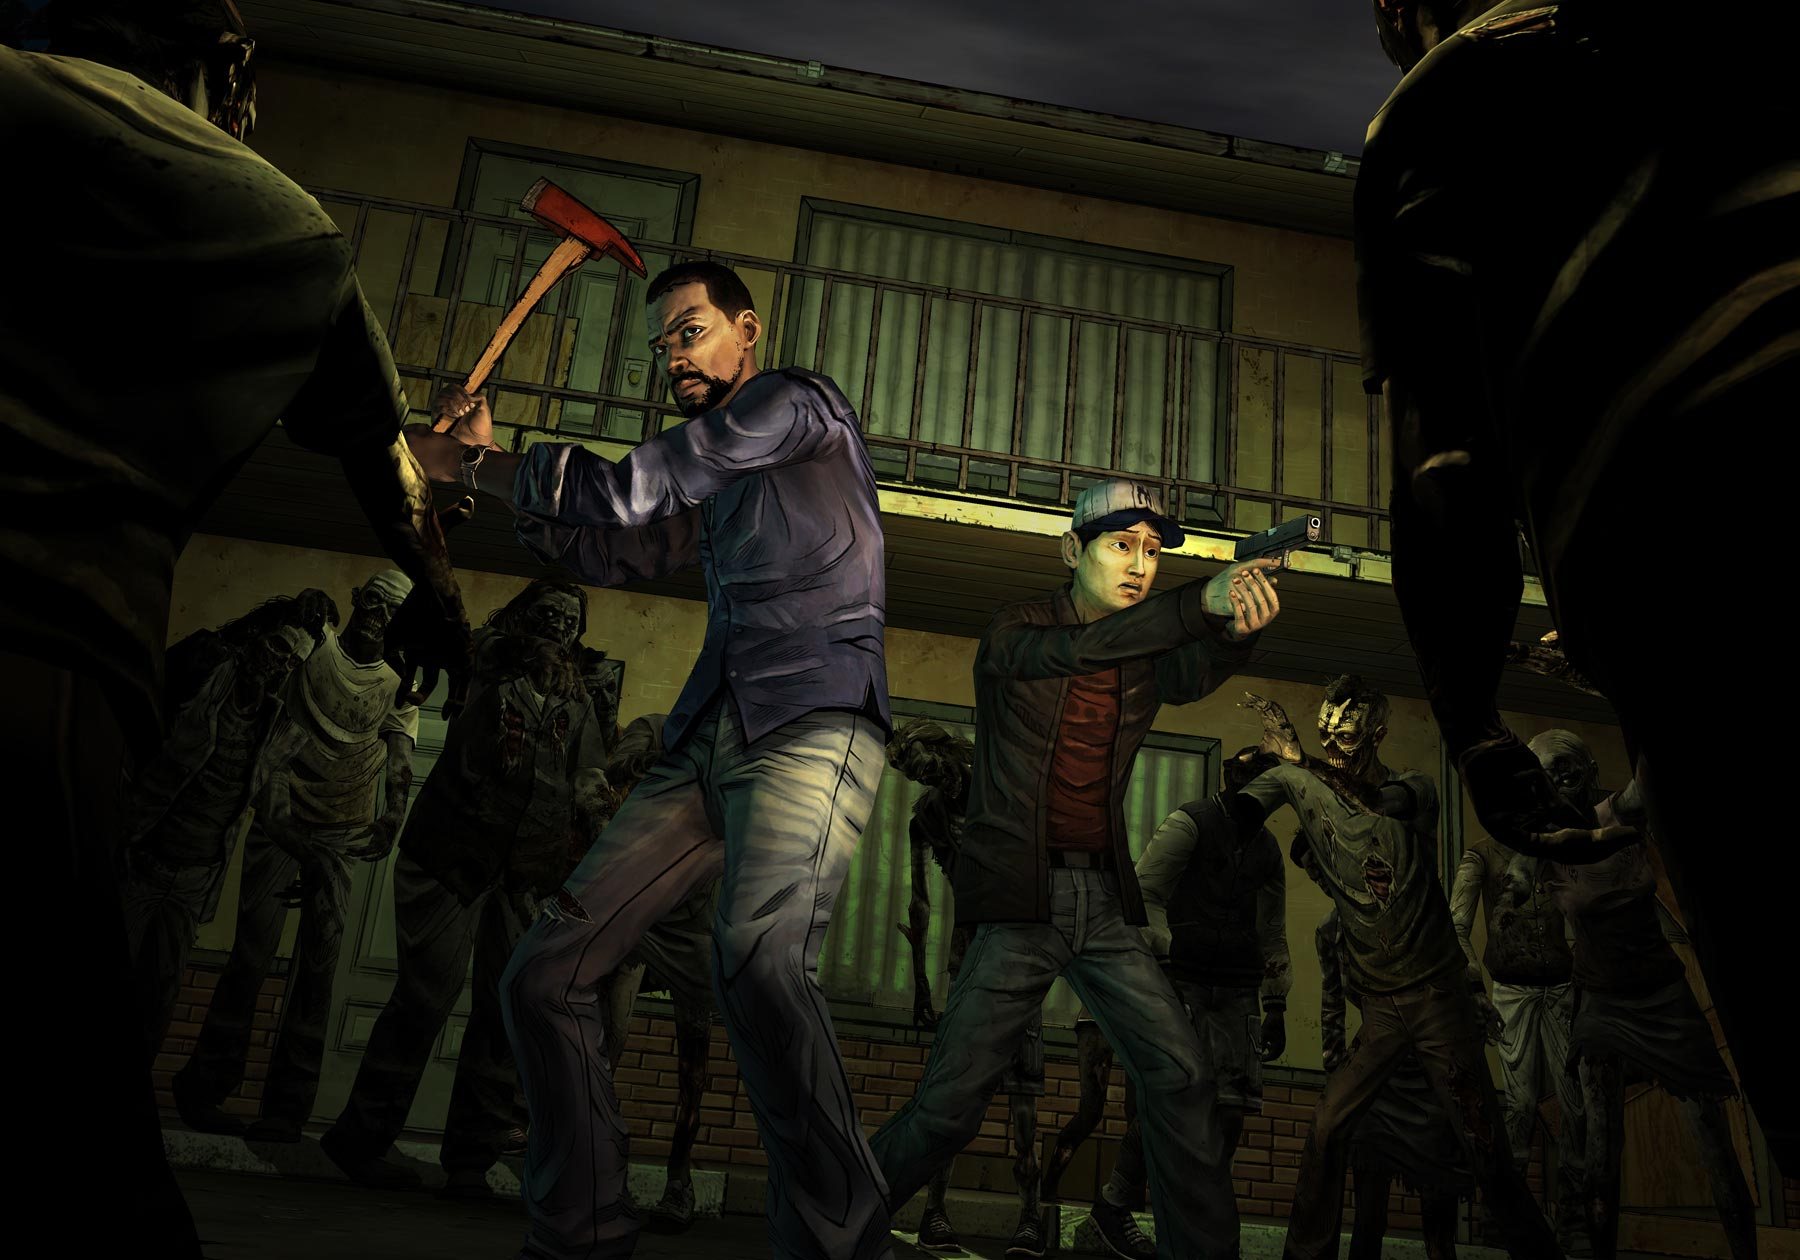 the walking dead game images surrounded hd wallpaper and background